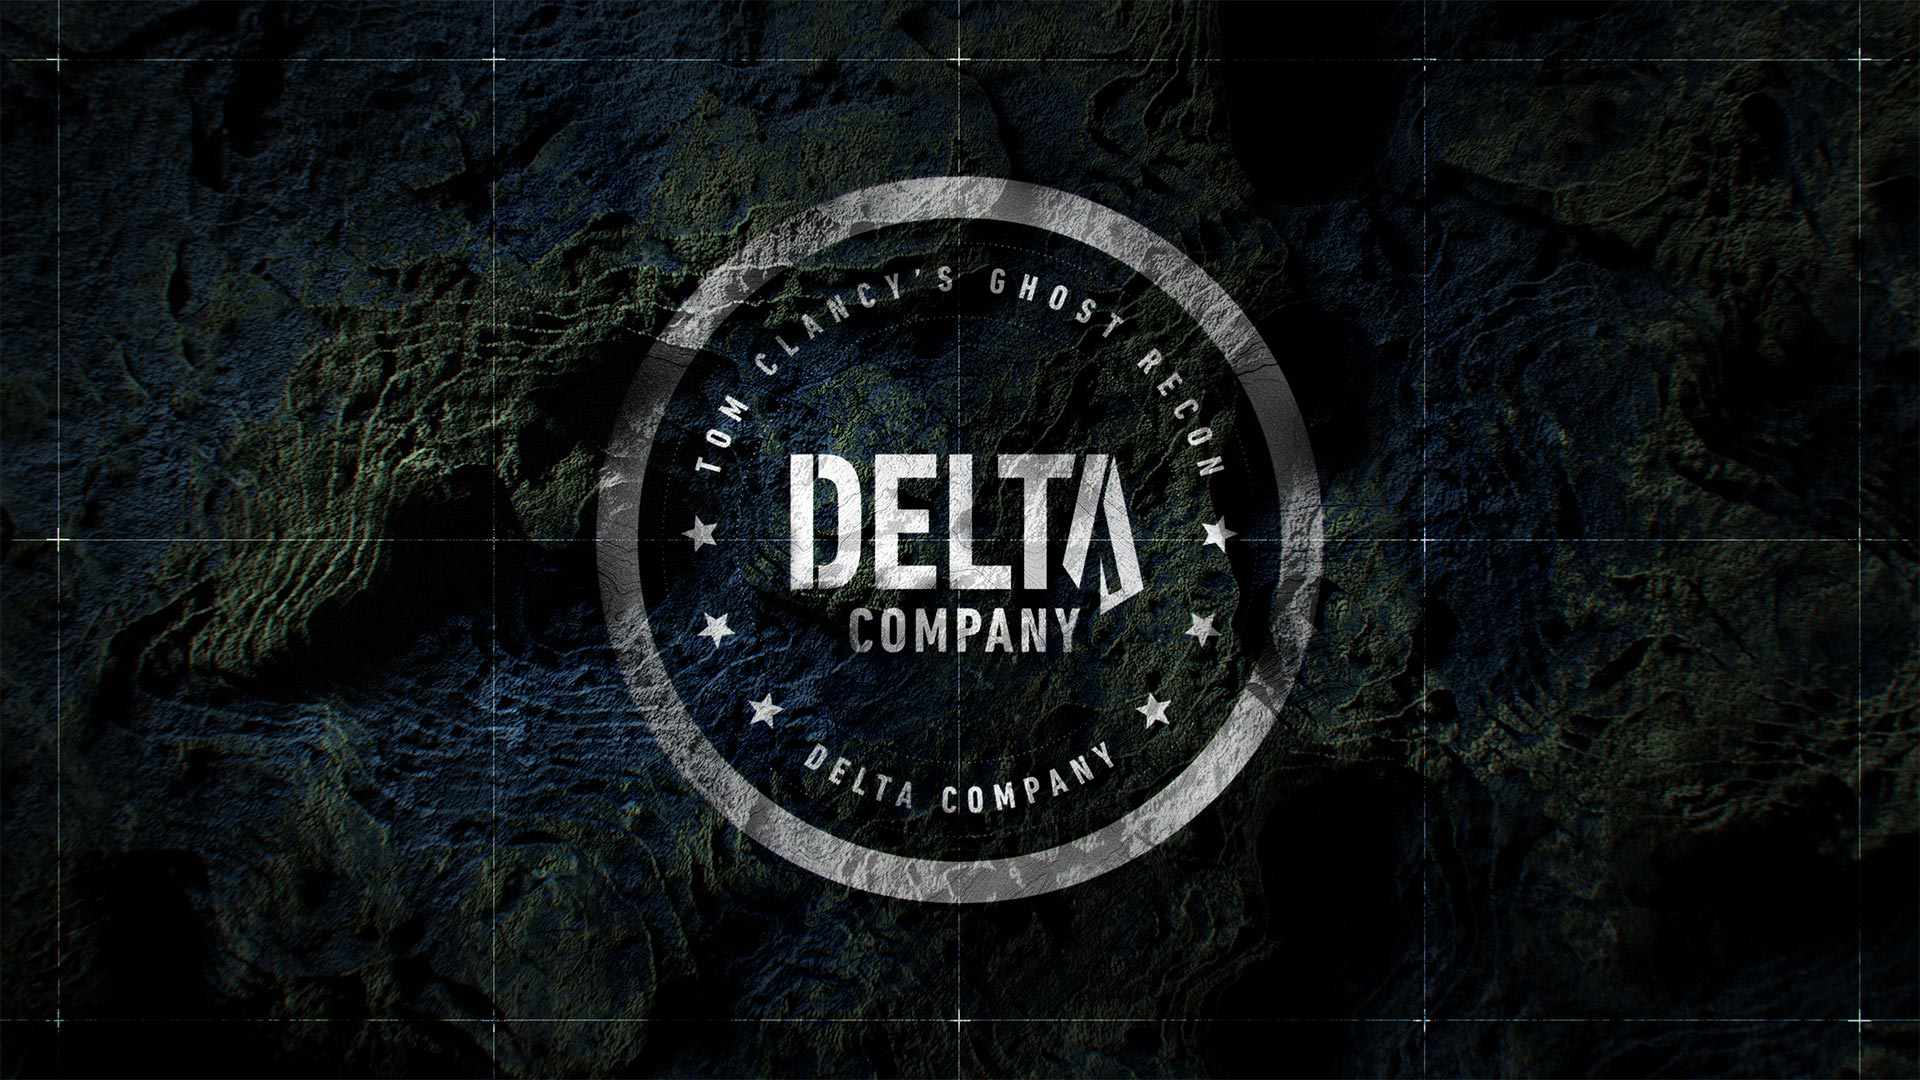 [GRB] [CAR] Home - Delta Company